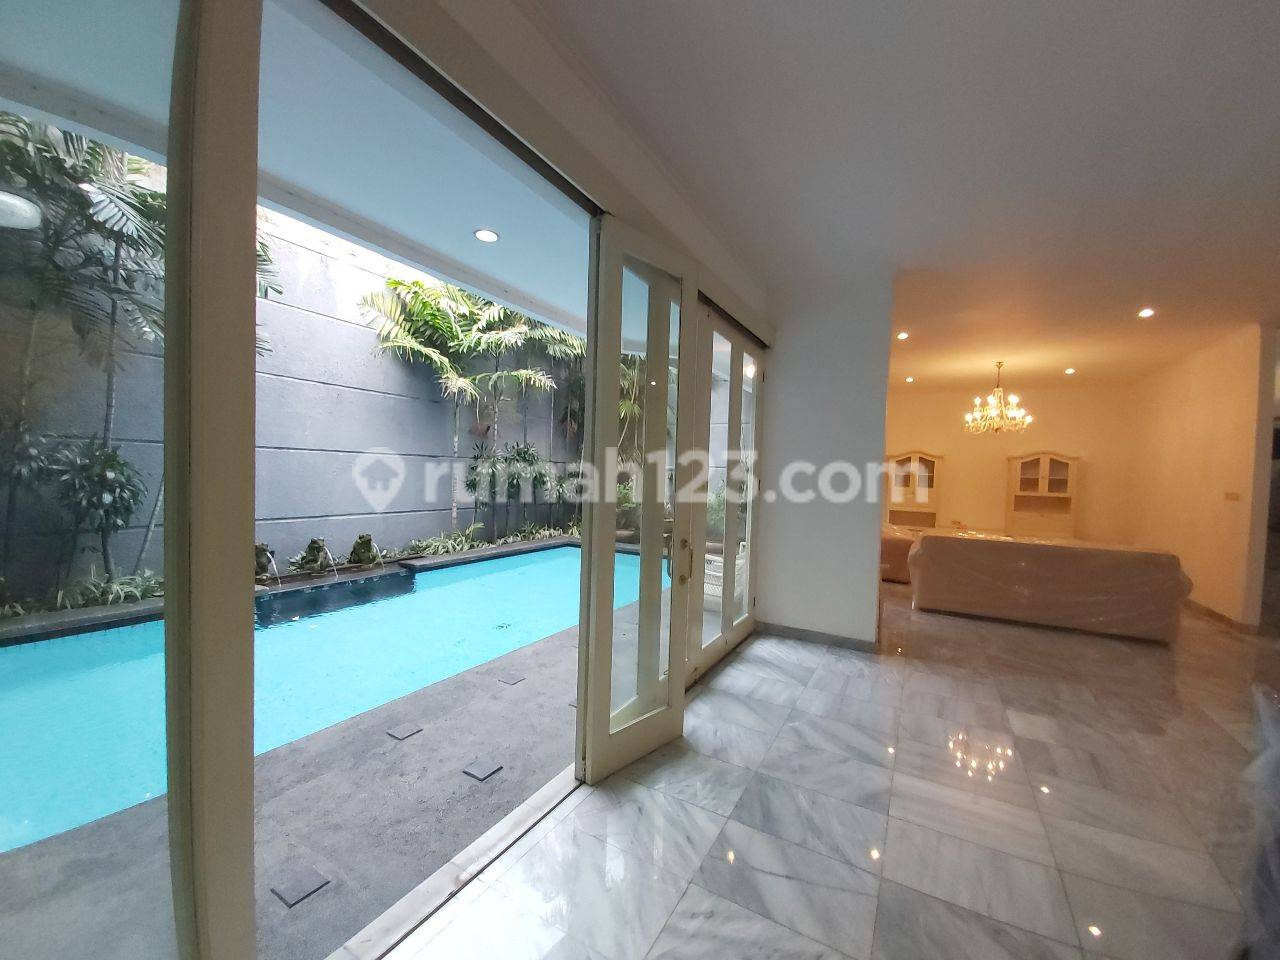 Cozy Furnished House in Pondok Indah